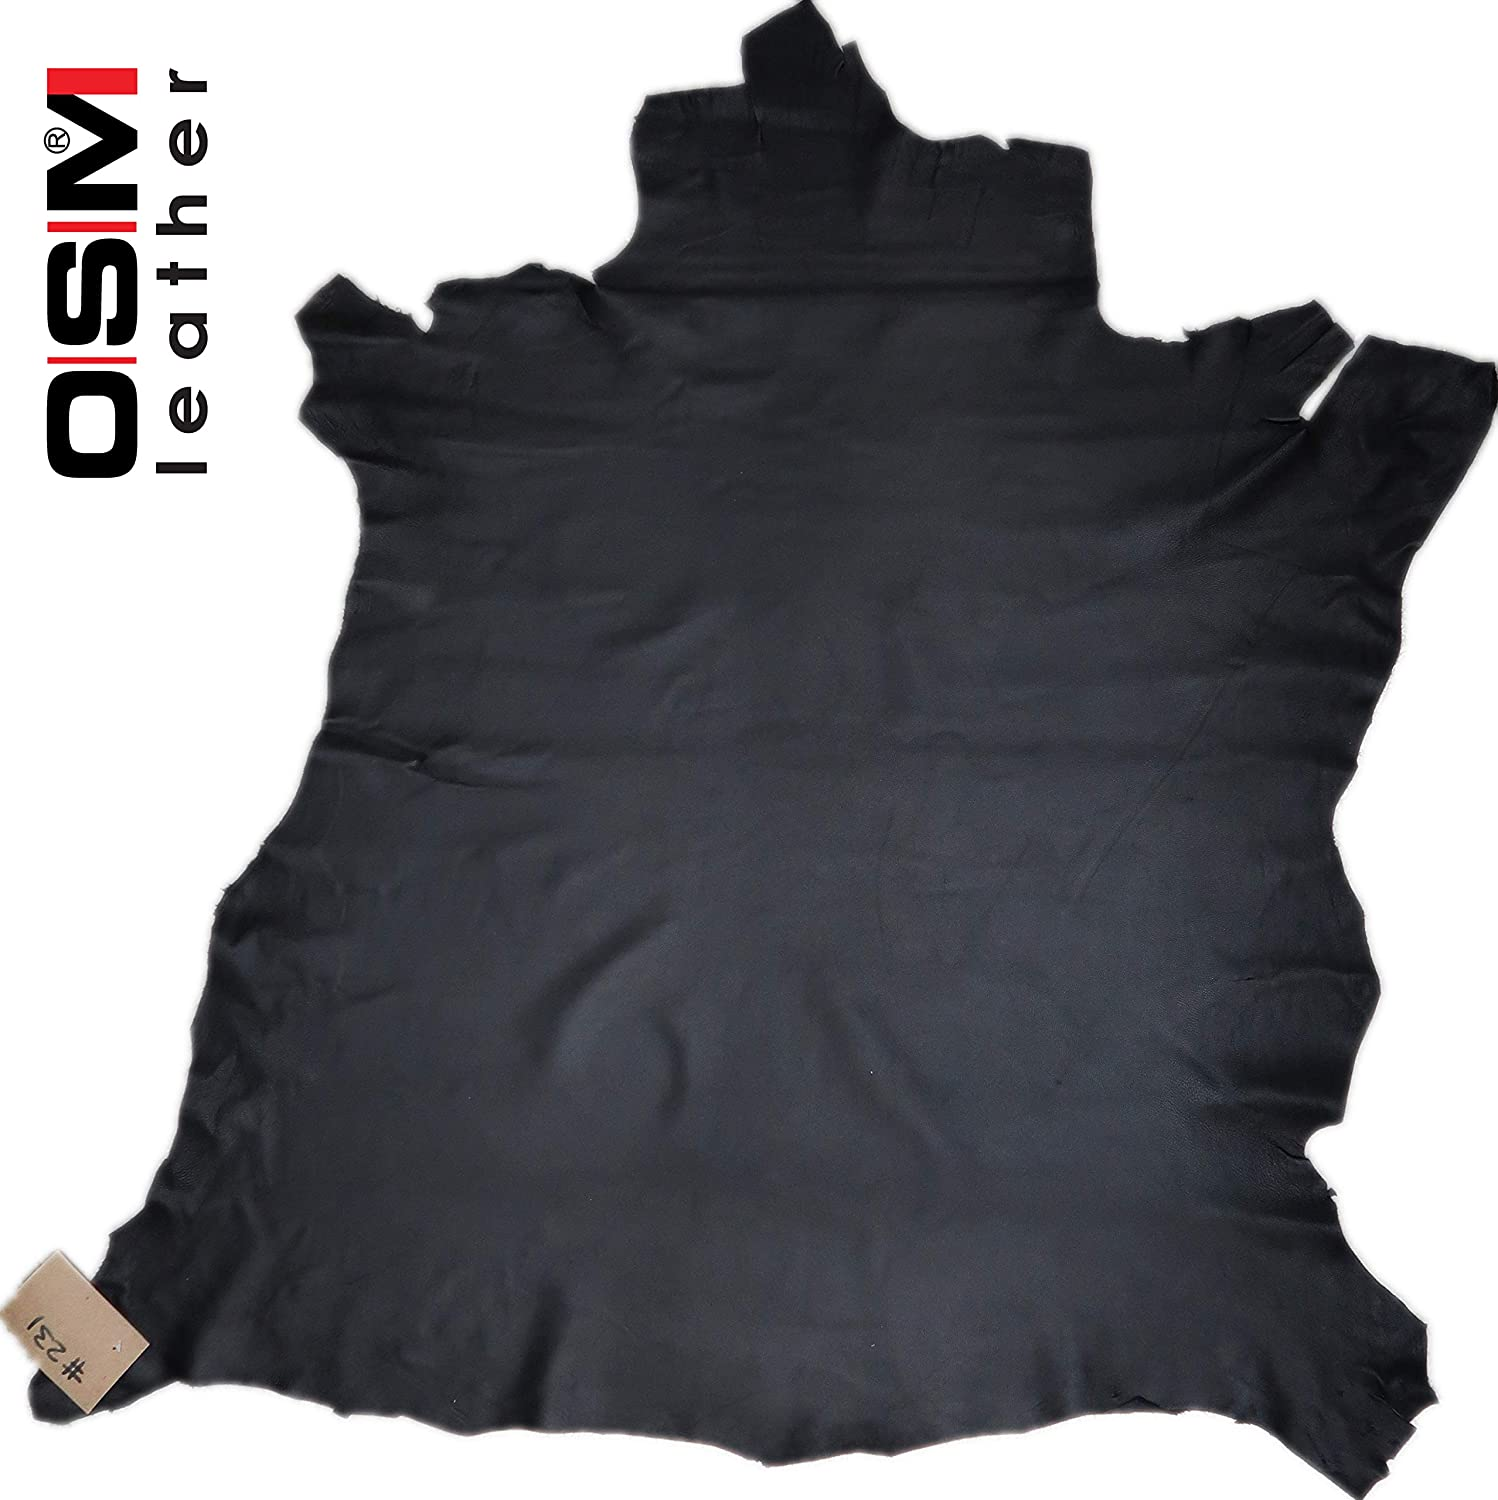 1.25-1.5oz OSM Lambskin Leather Hide #231 Sofitic 0.5-0.6mm 6SF for Garments Upholstery Handbags Purses Wallets Home Decoration and Leather Crafting